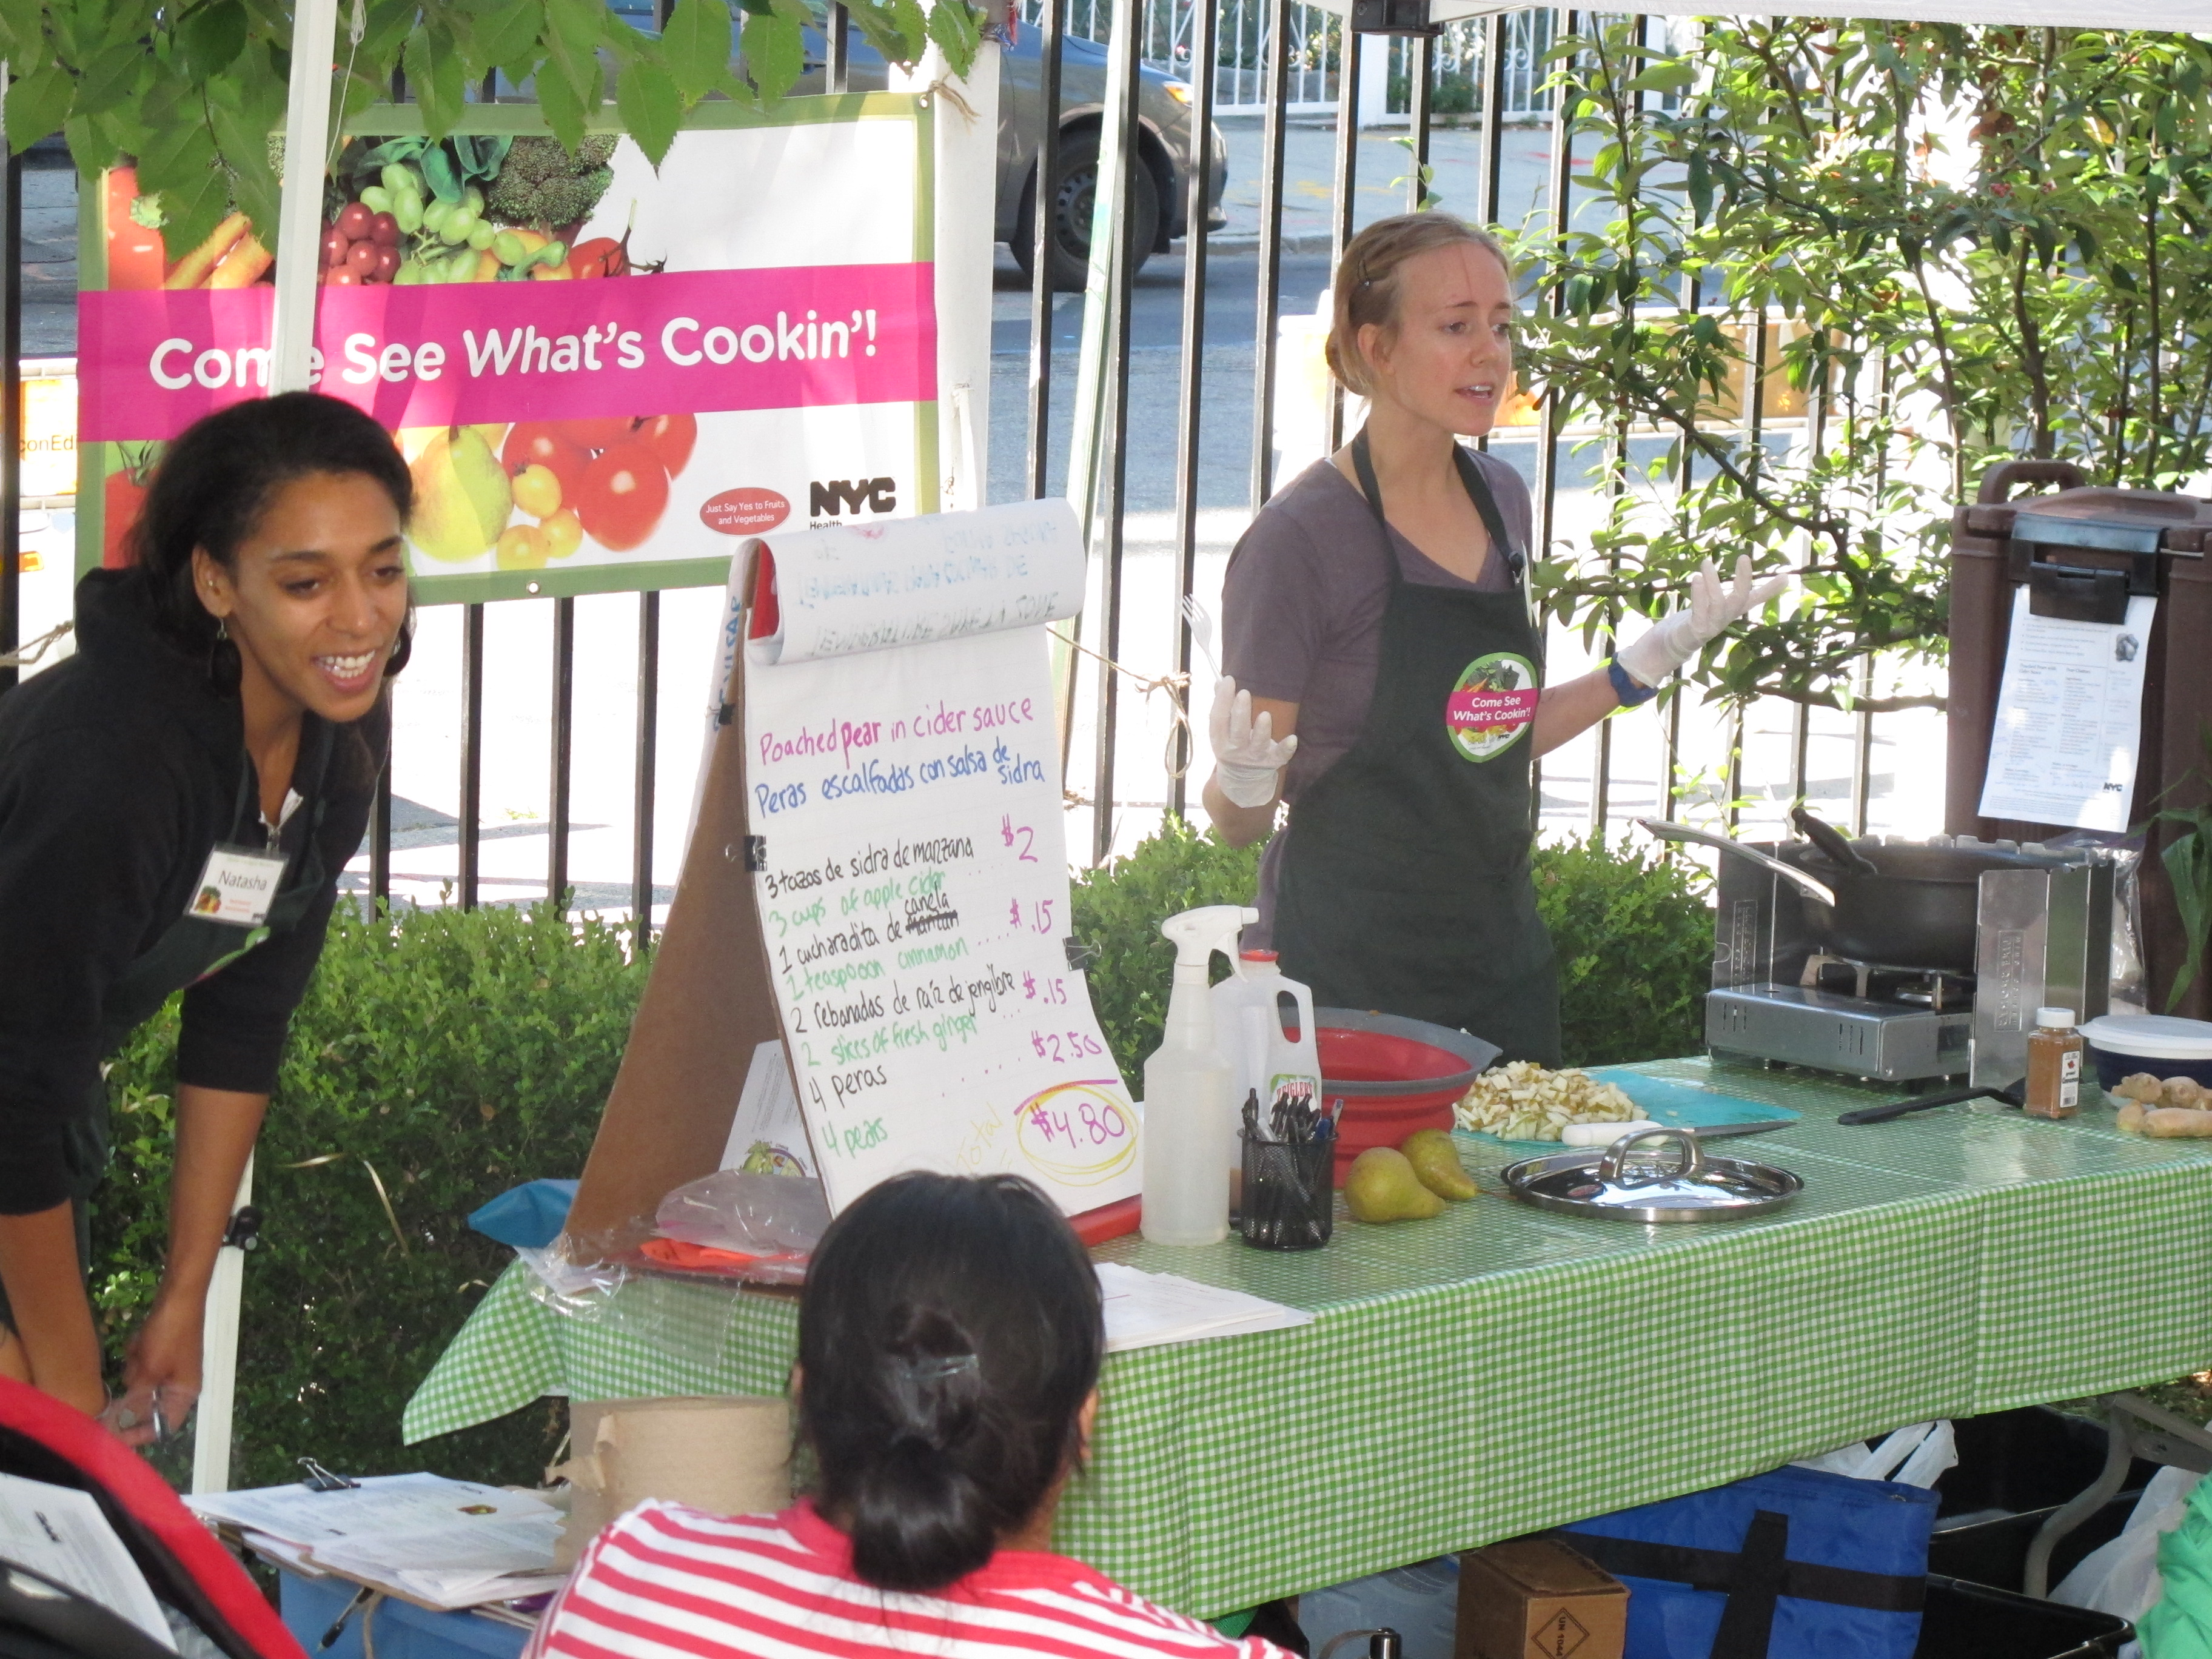 Padre Plaza offers cooking lessons